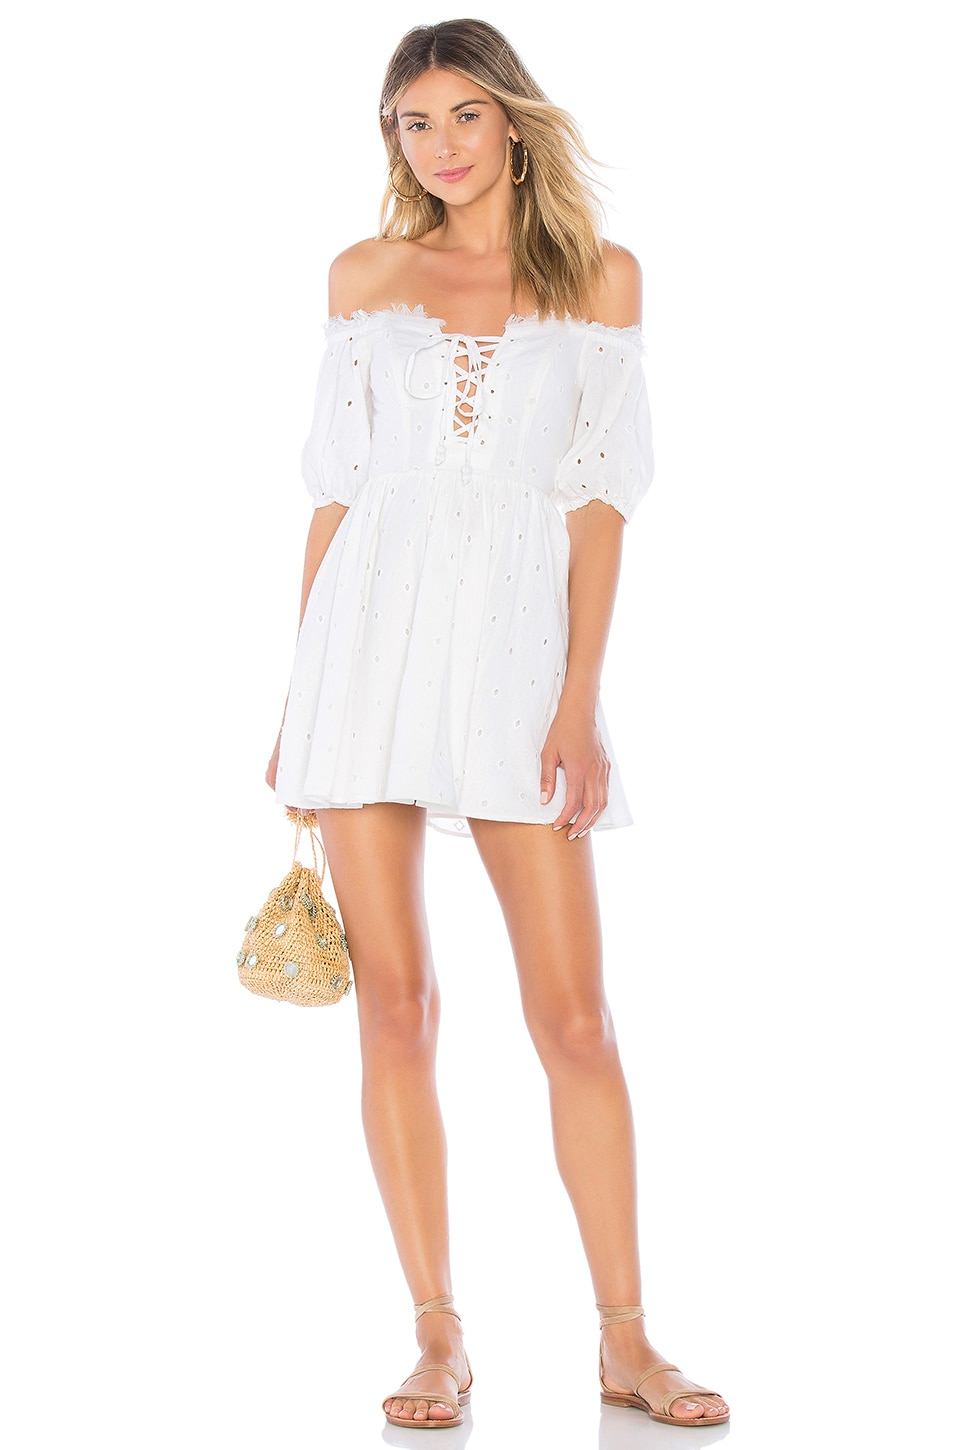 House of Harlow 1960 x REVOLVE Frans Dress in White